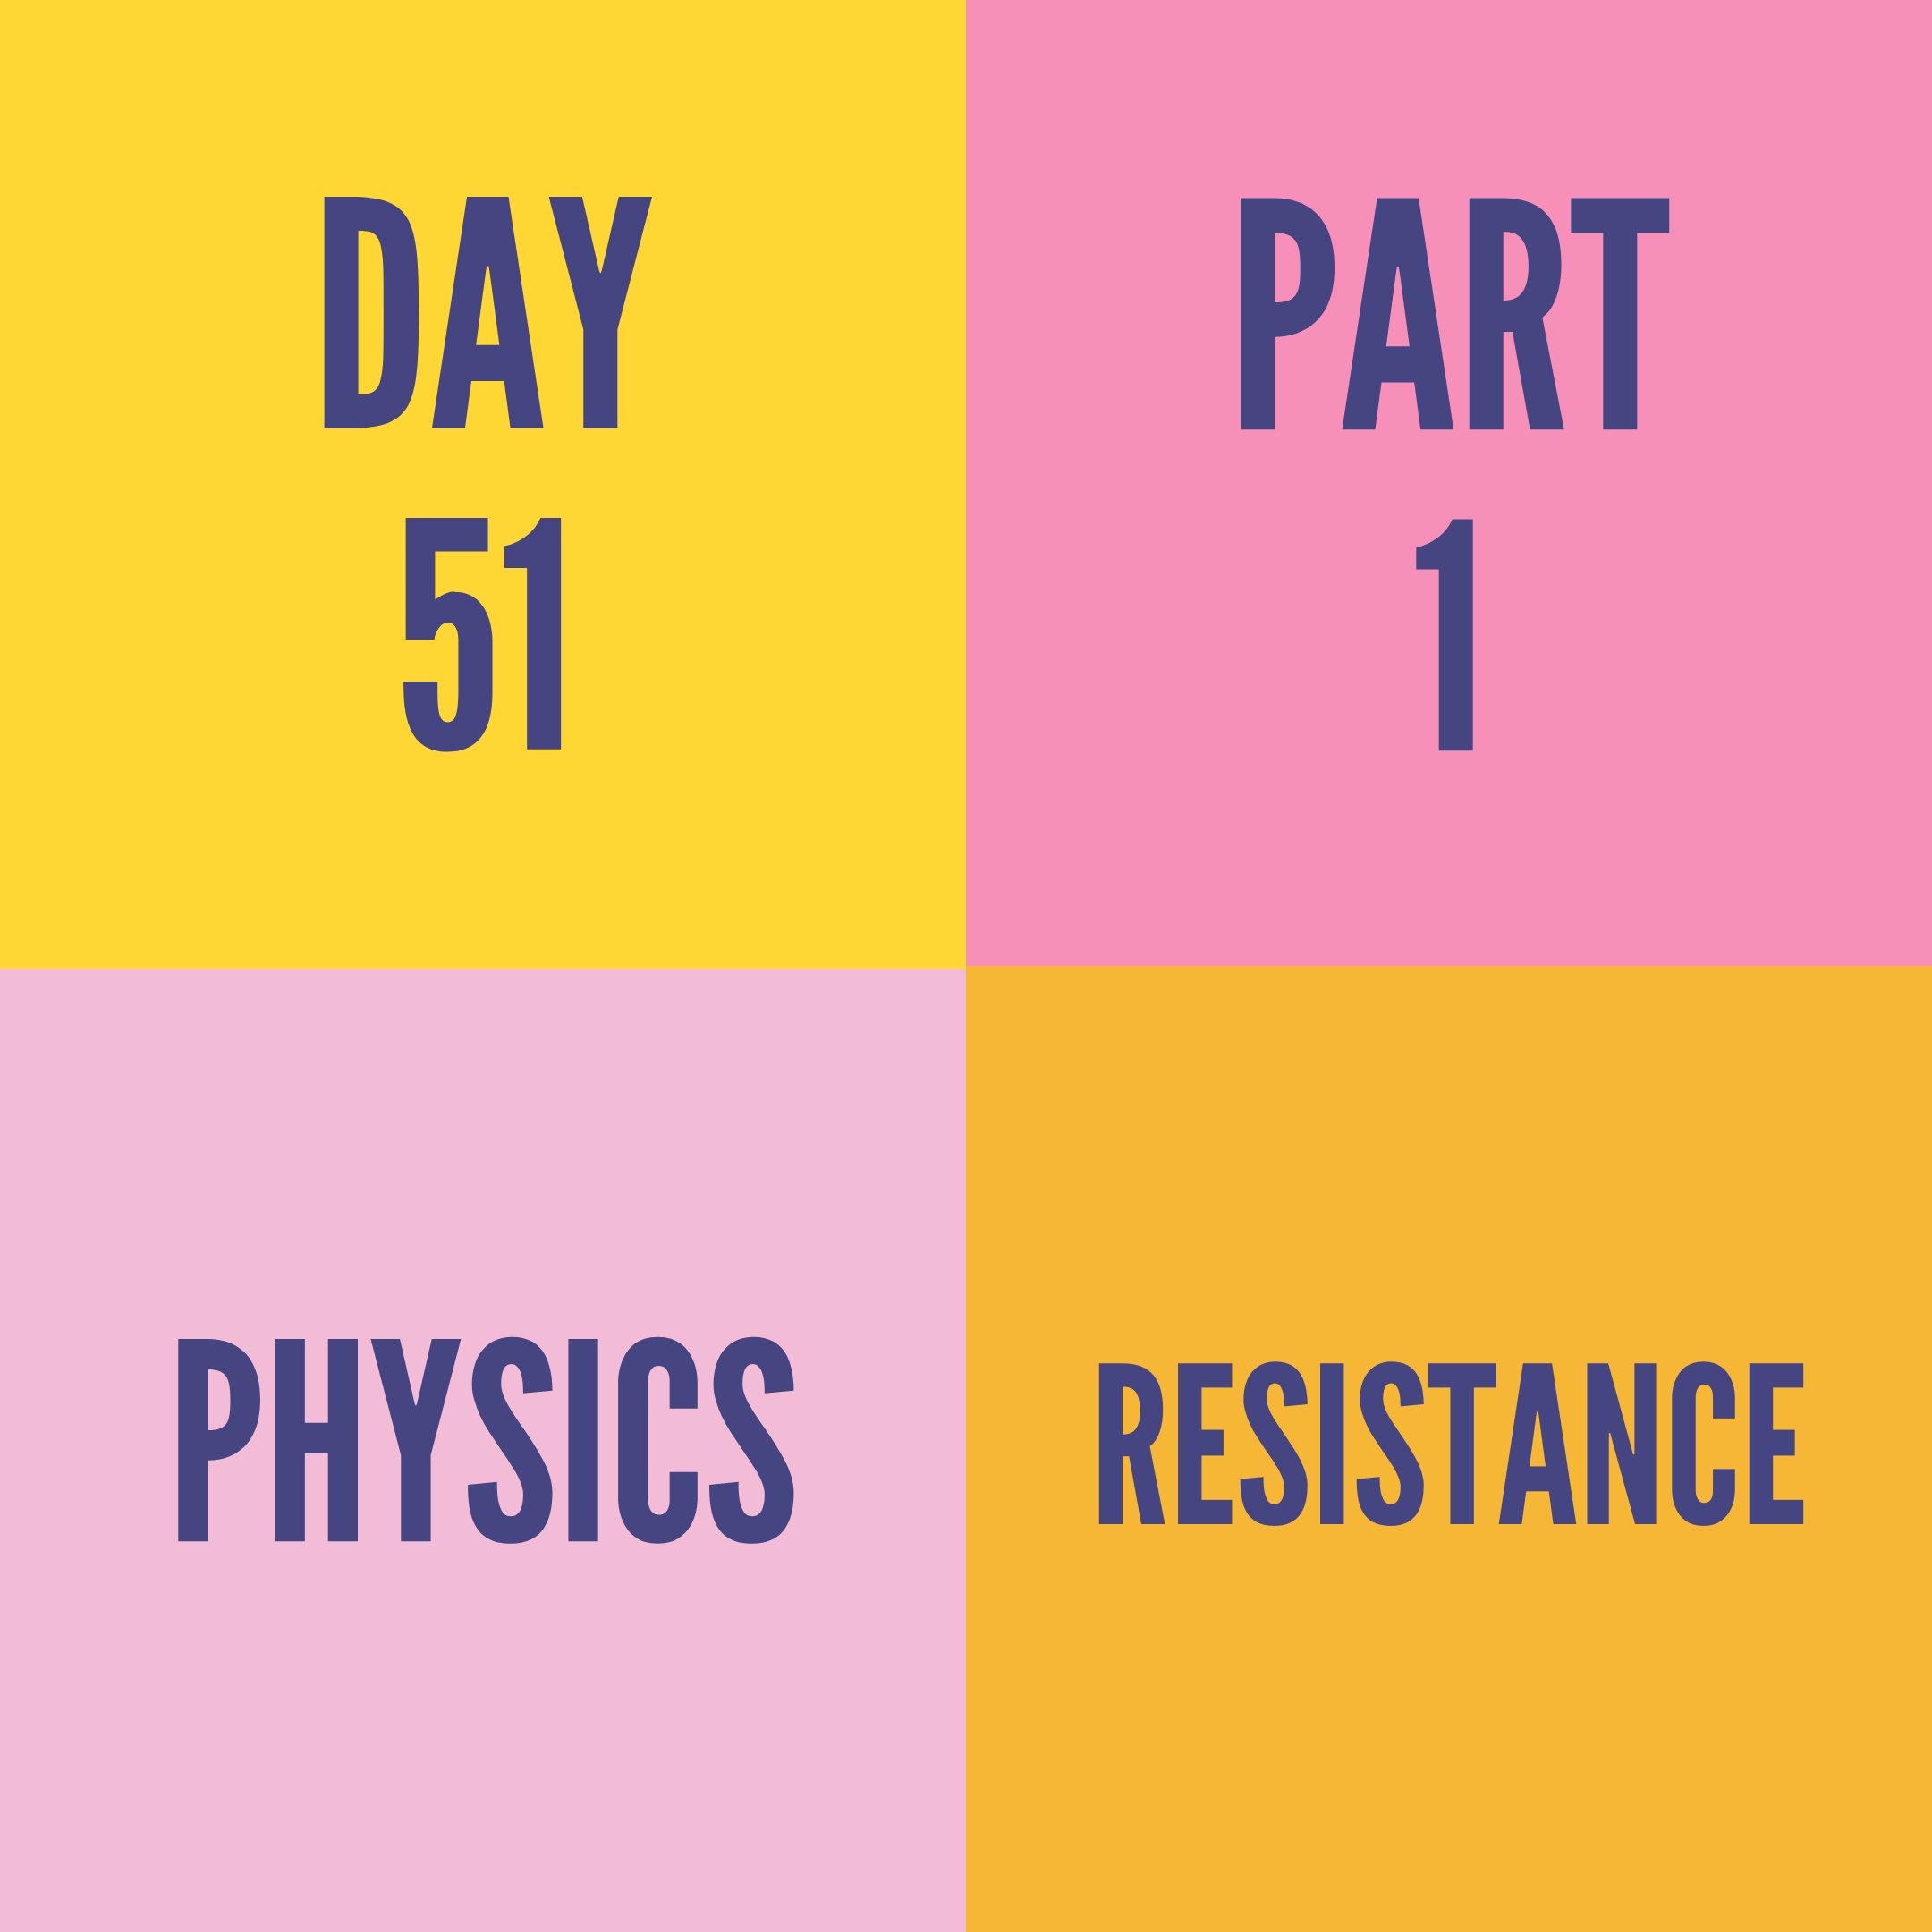 DAY-51 PART-1  RESISTANCE